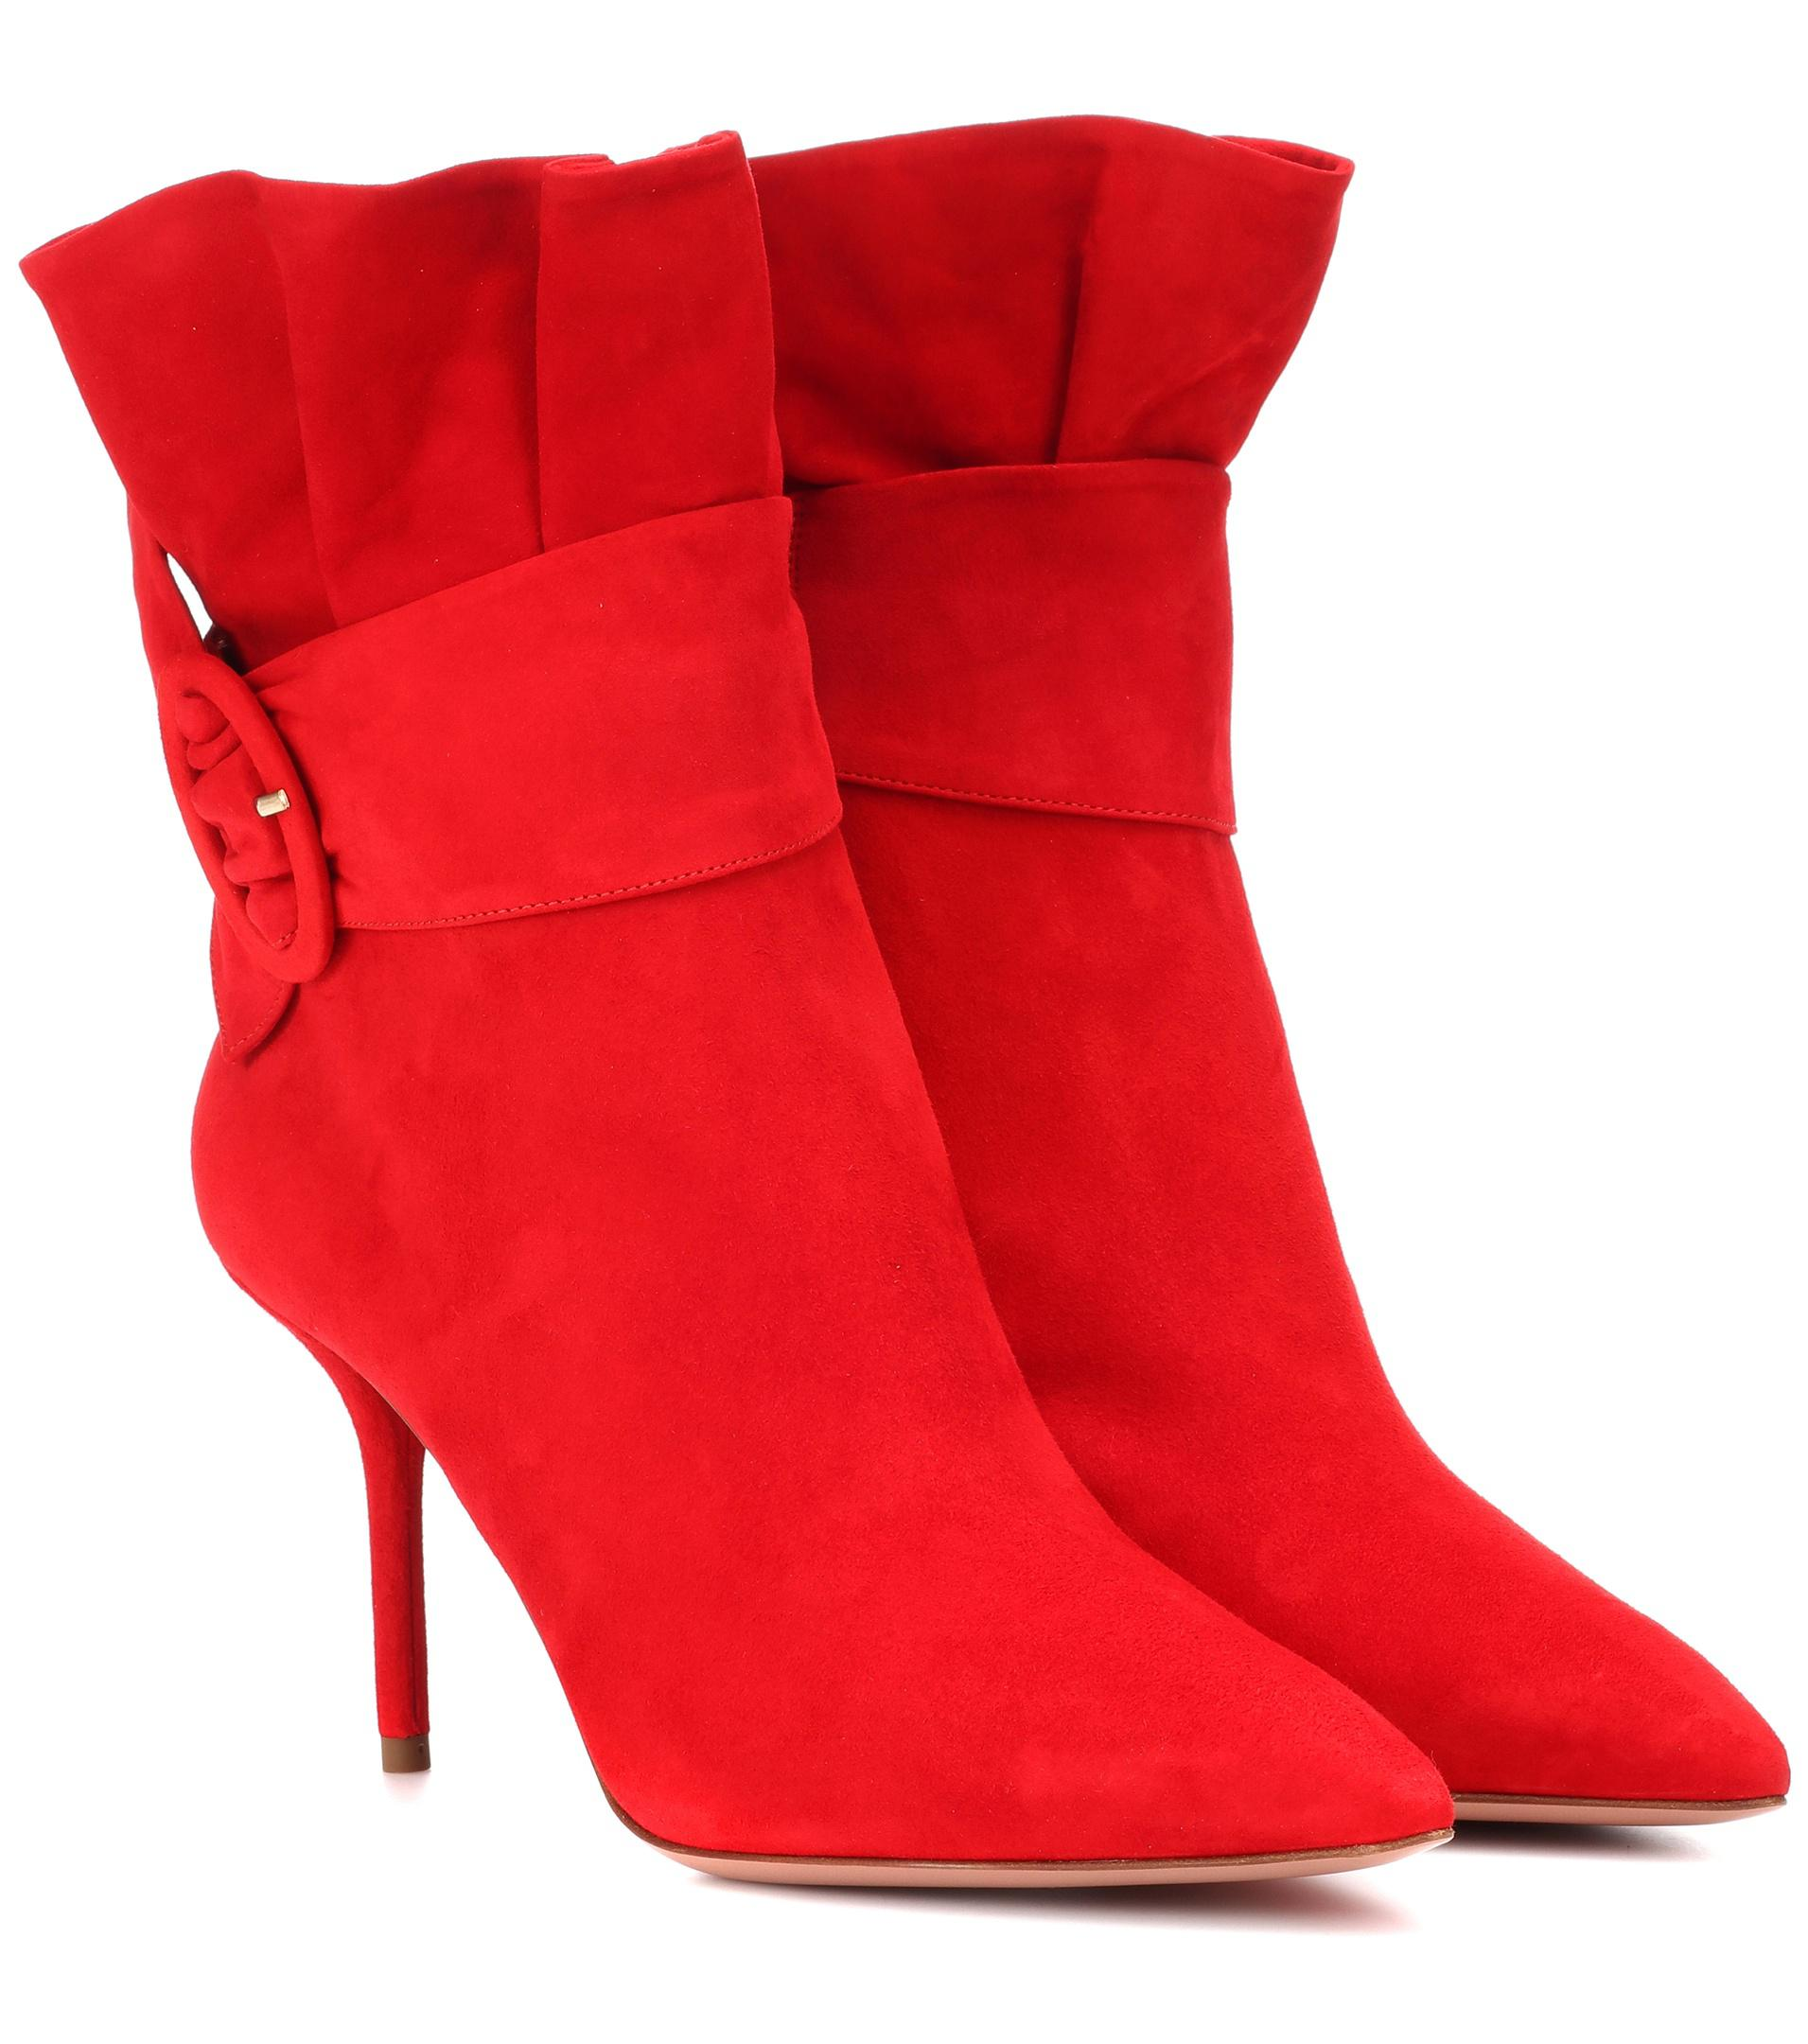 Aquazzura Palace 85 suede ankle boots clearance original visa payment cheap price cheap sast cost for sale LXqxIk5gh